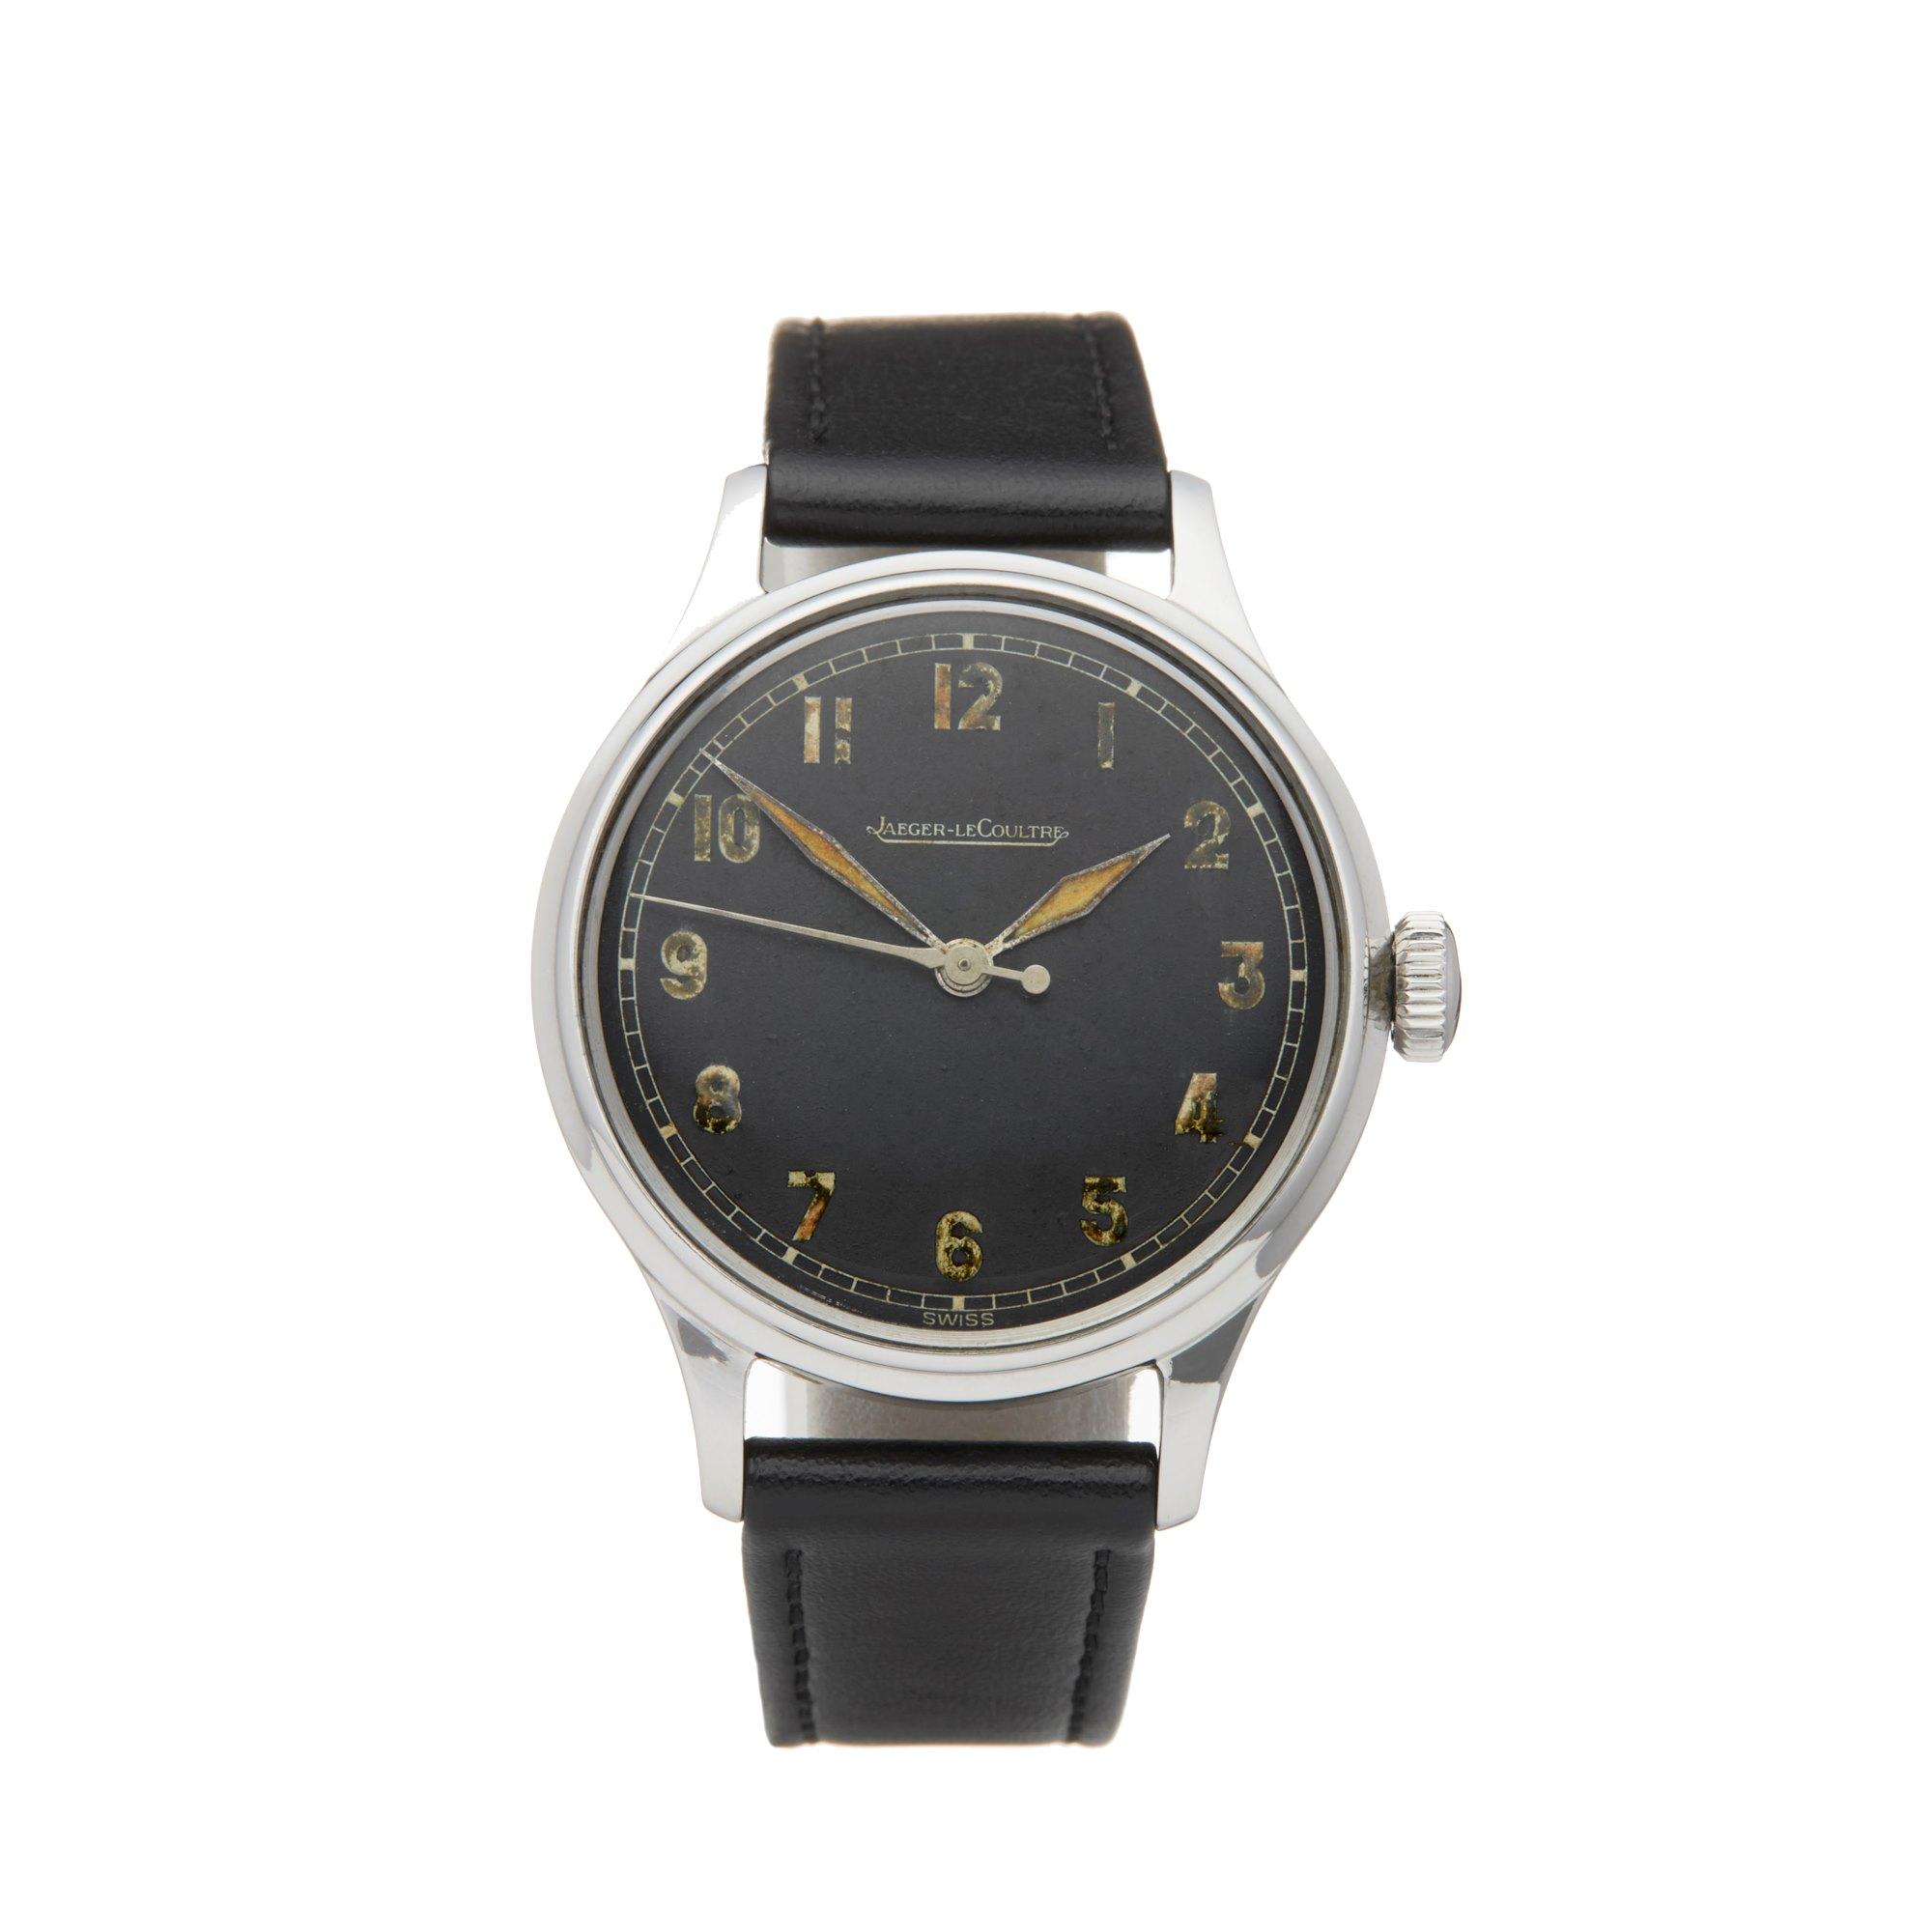 Jaeger-LeCoultre Vintage Stainless Steel Cal.P/468